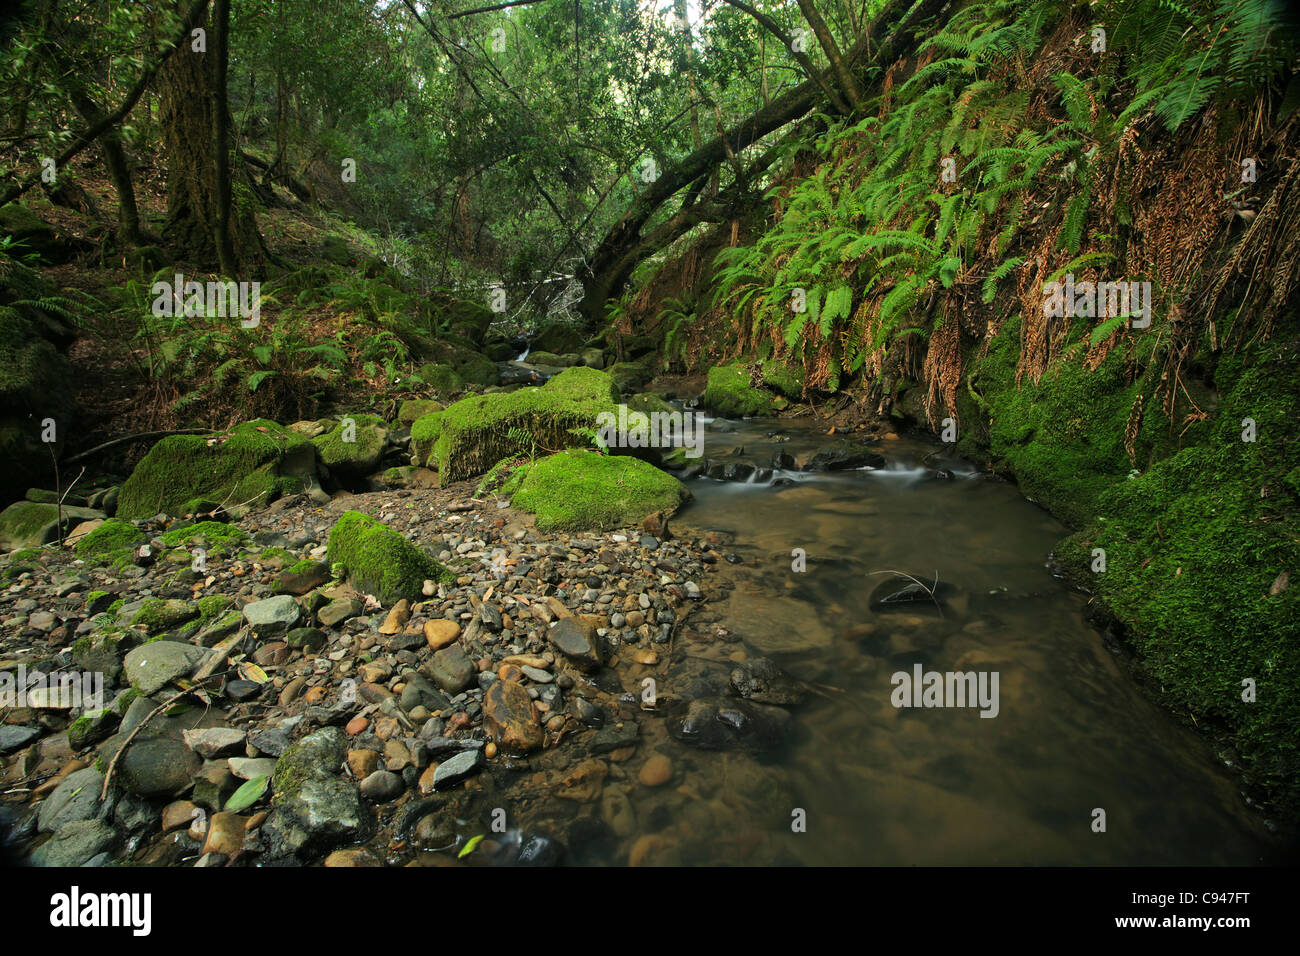 A remote prehistoric rain forest with large ferns, located in California - Stock Image